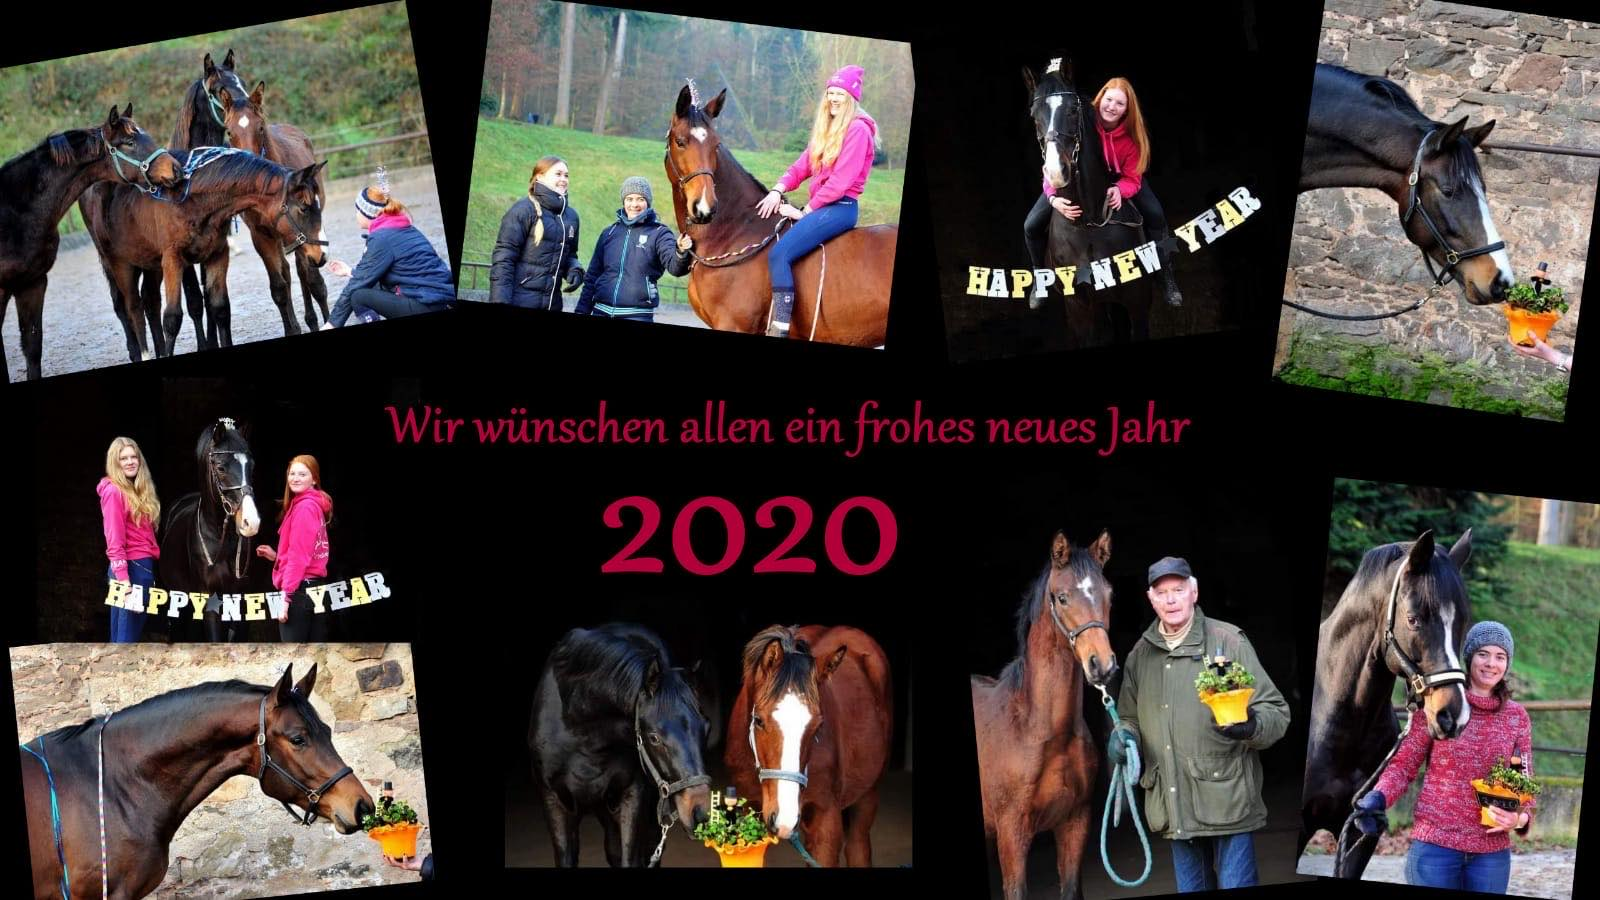 Happy New Year 2020 - Trakehner Gestüt Hämelschenburg 2019 - Foto: Beate Langels